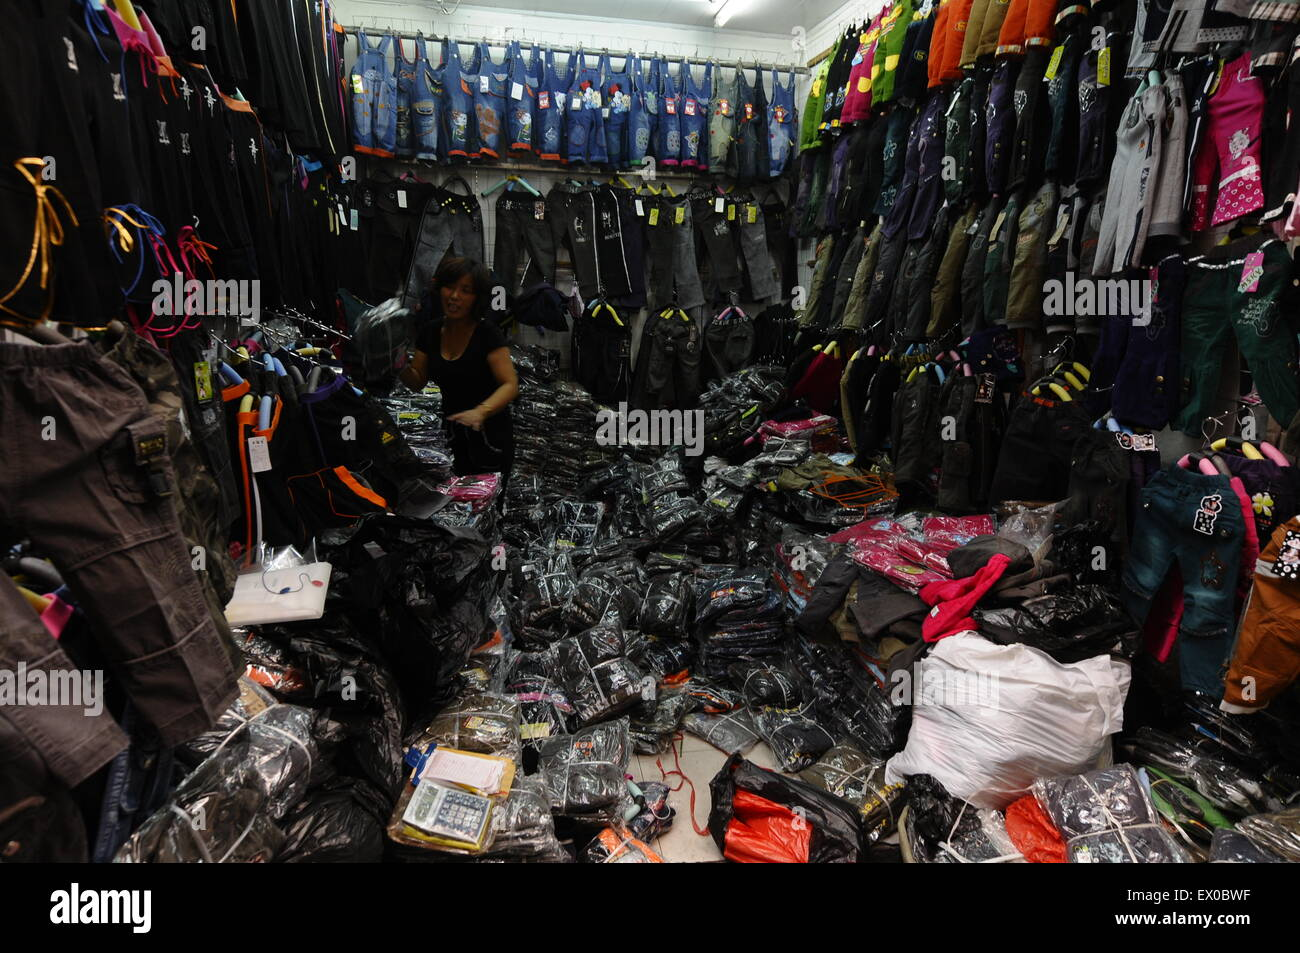 A clothes vendor naps while waits for customers at store in Changzhi, Shanxi province September 1, 2009. VCP - Stock Image